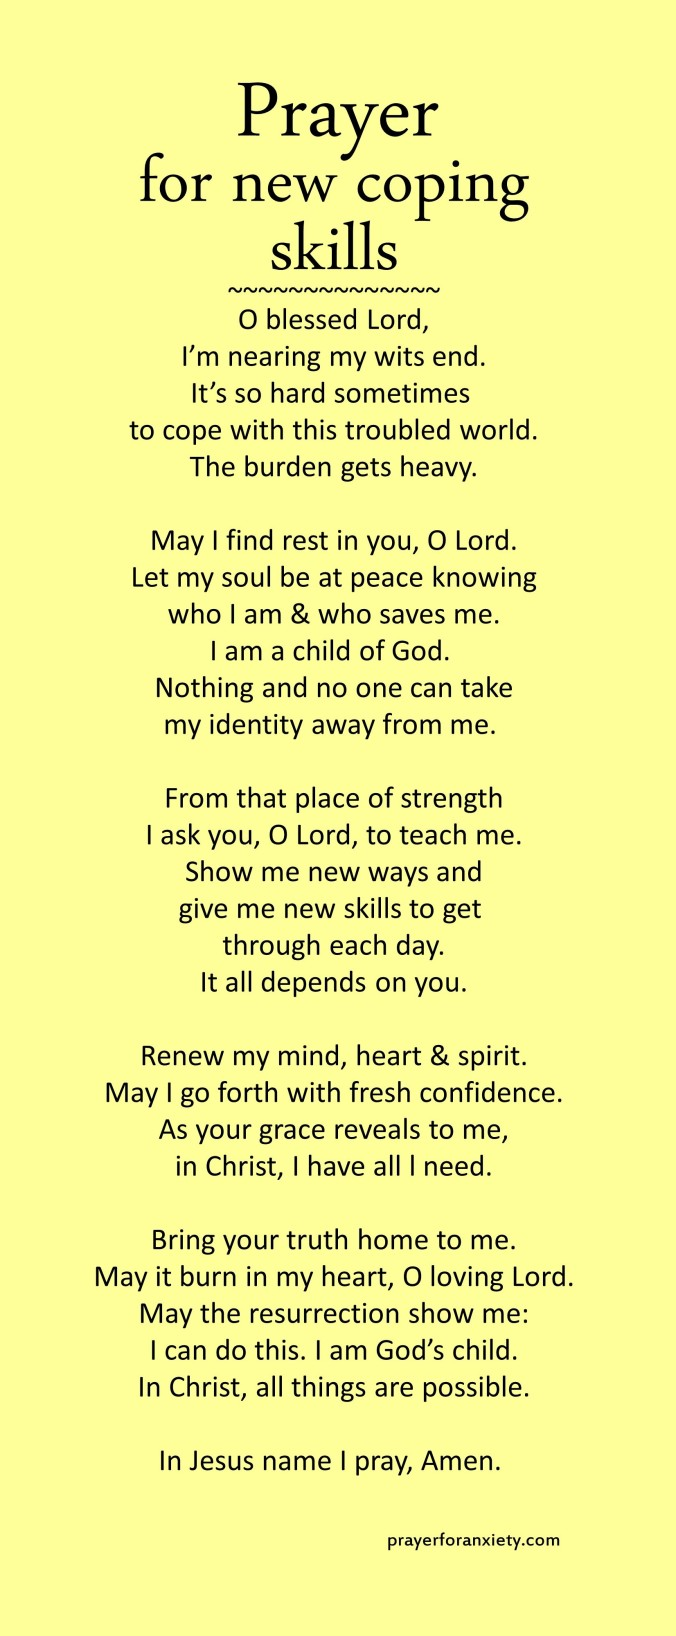 Prayer for new coping skills